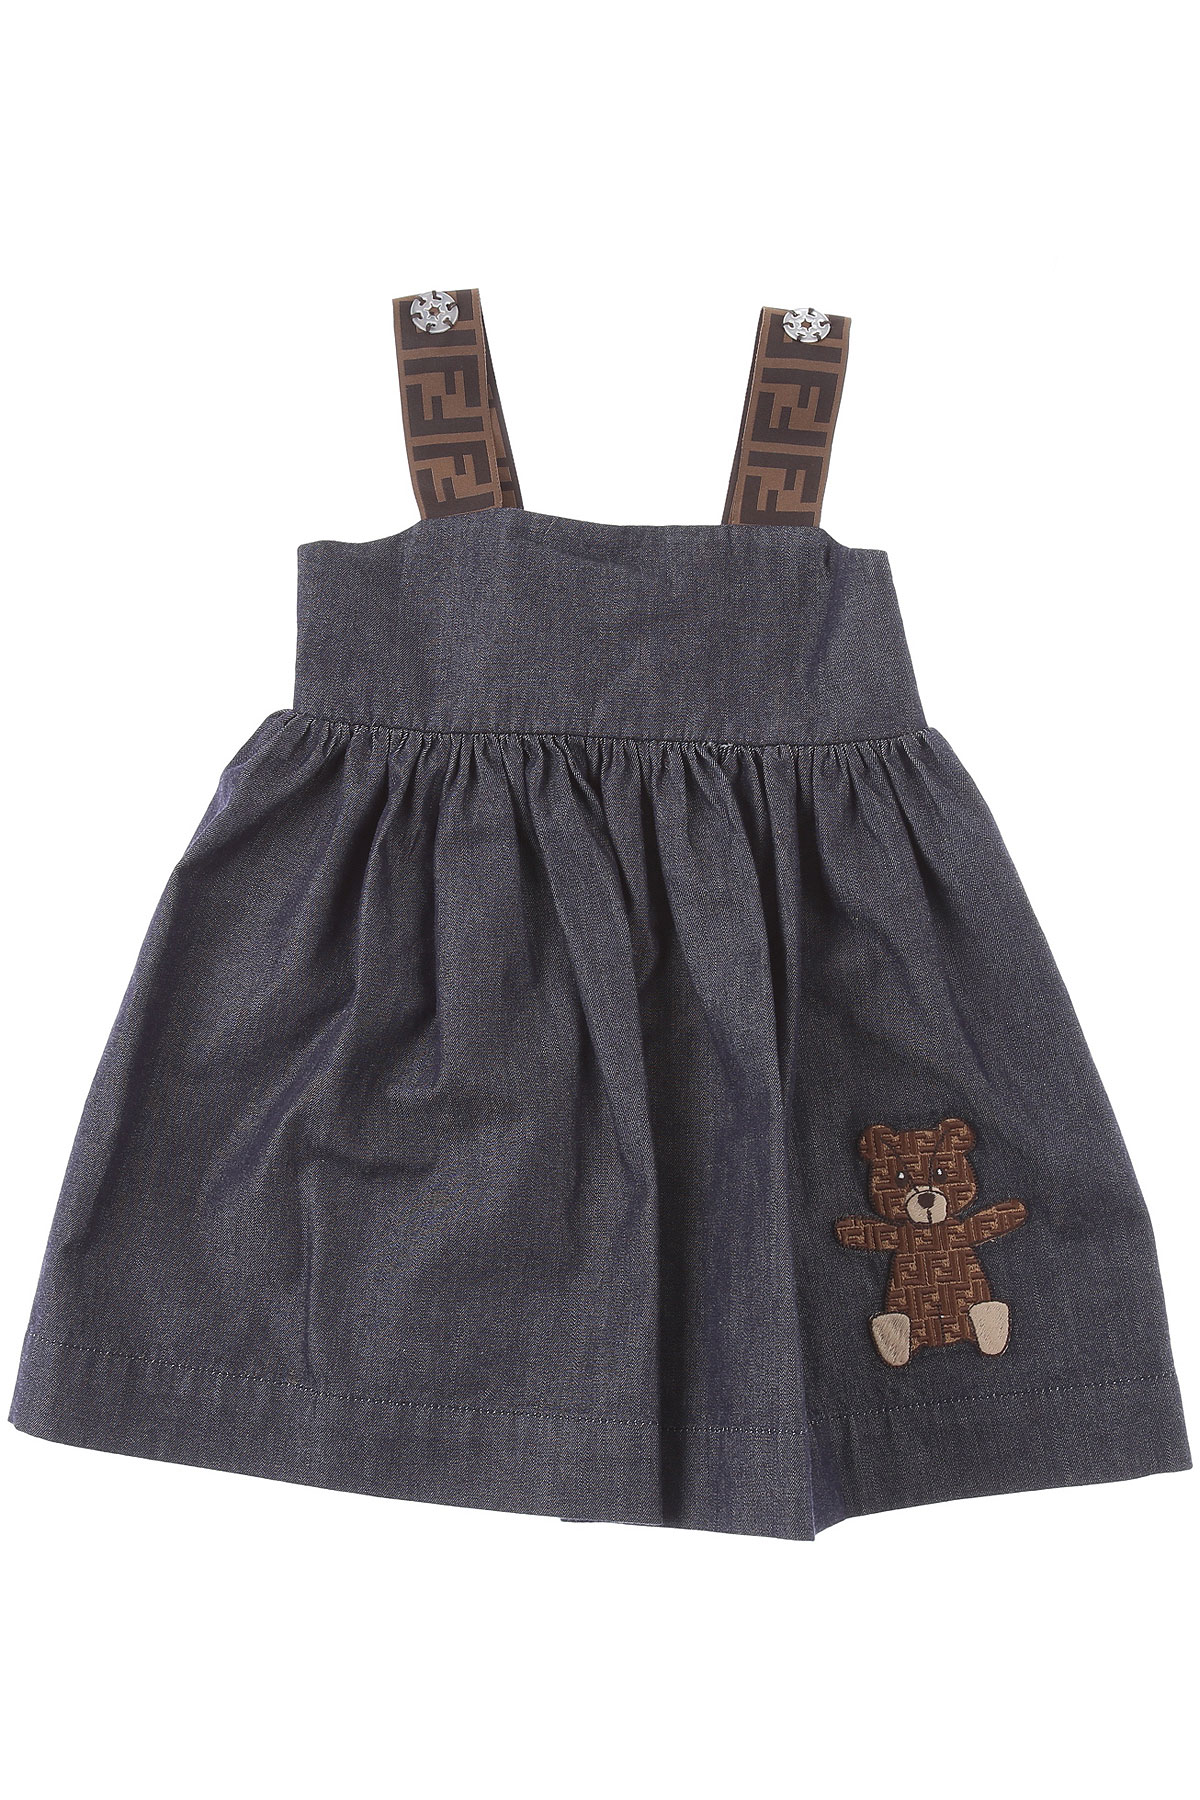 Fendi Baby Dress for Girls On Sale, Blue Denim, Cotton, 2019, 18M 2Y 6M 9M